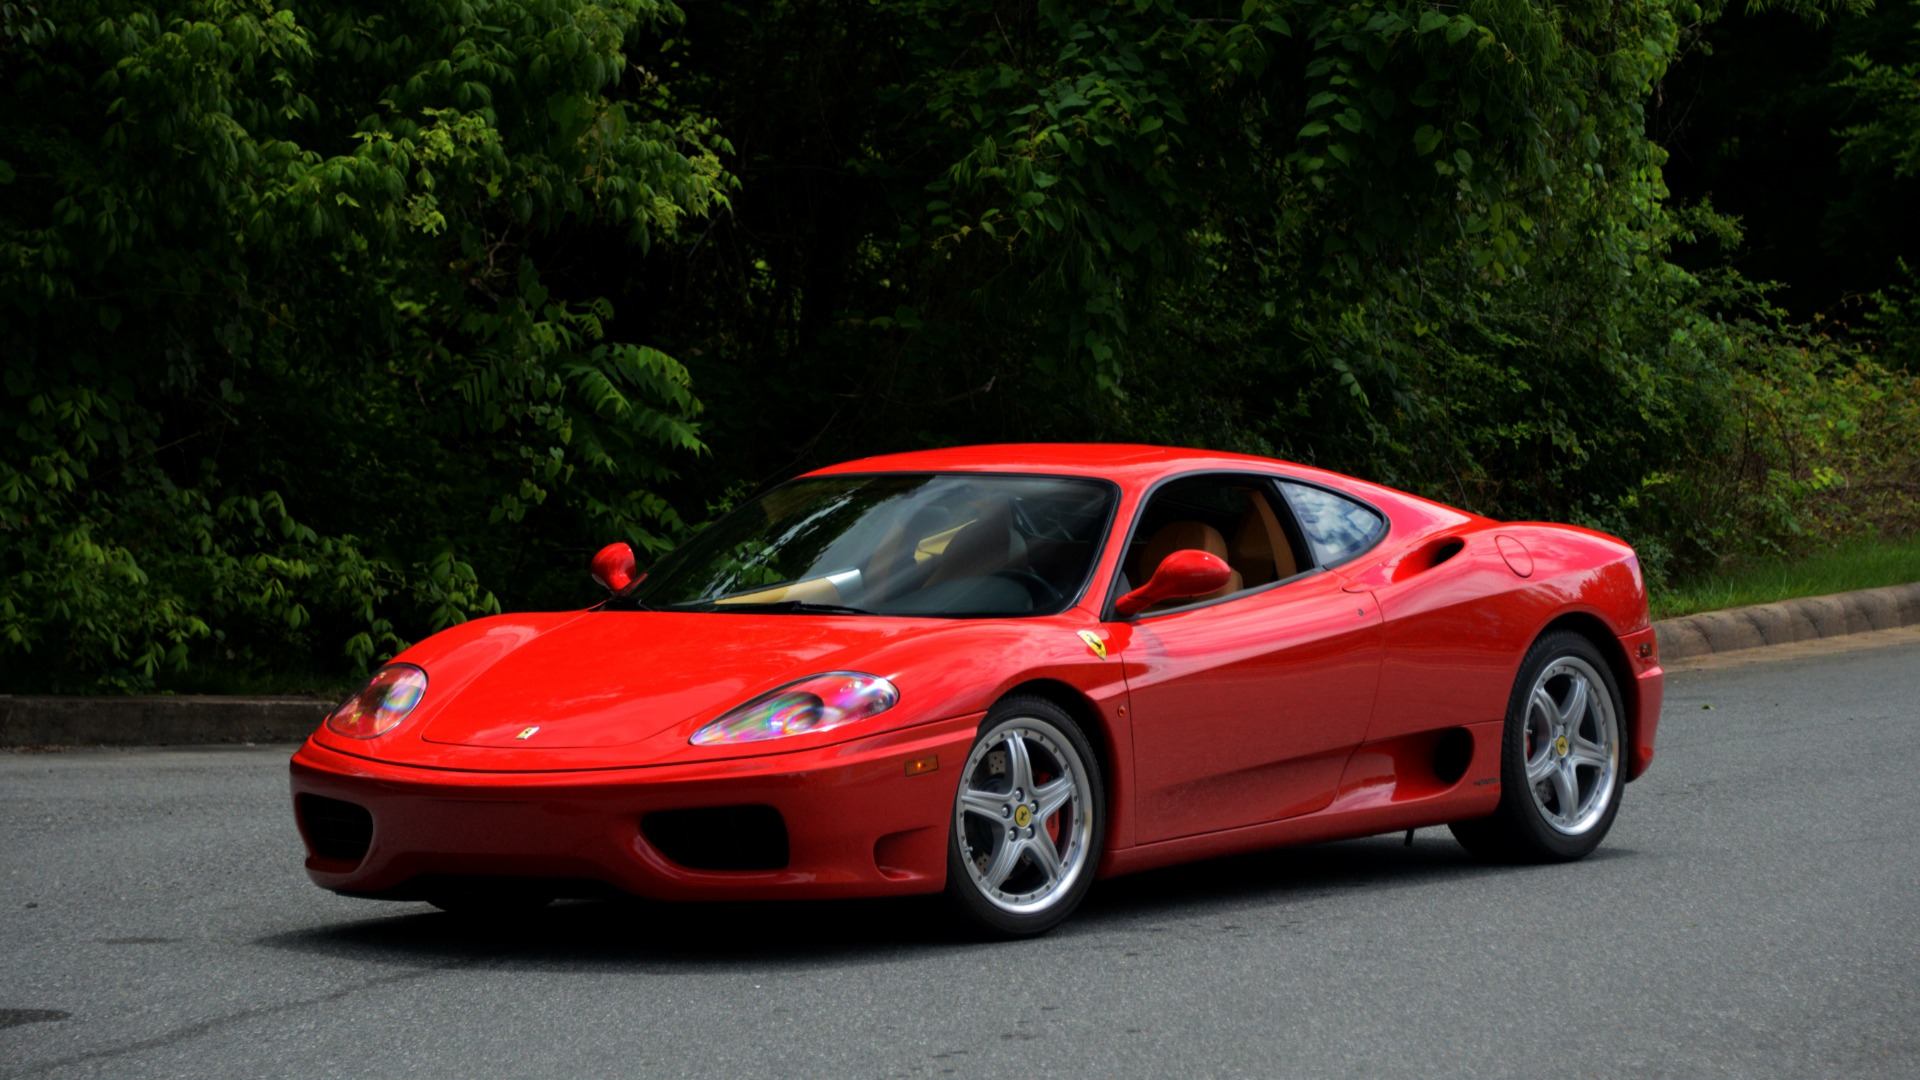 Used 2004 Ferrari 360 MODENA COUPE / GATED 6-SPD MANUAL / SUNROOF / LOW MILES for sale Sold at Formula Imports in Charlotte NC 28227 13